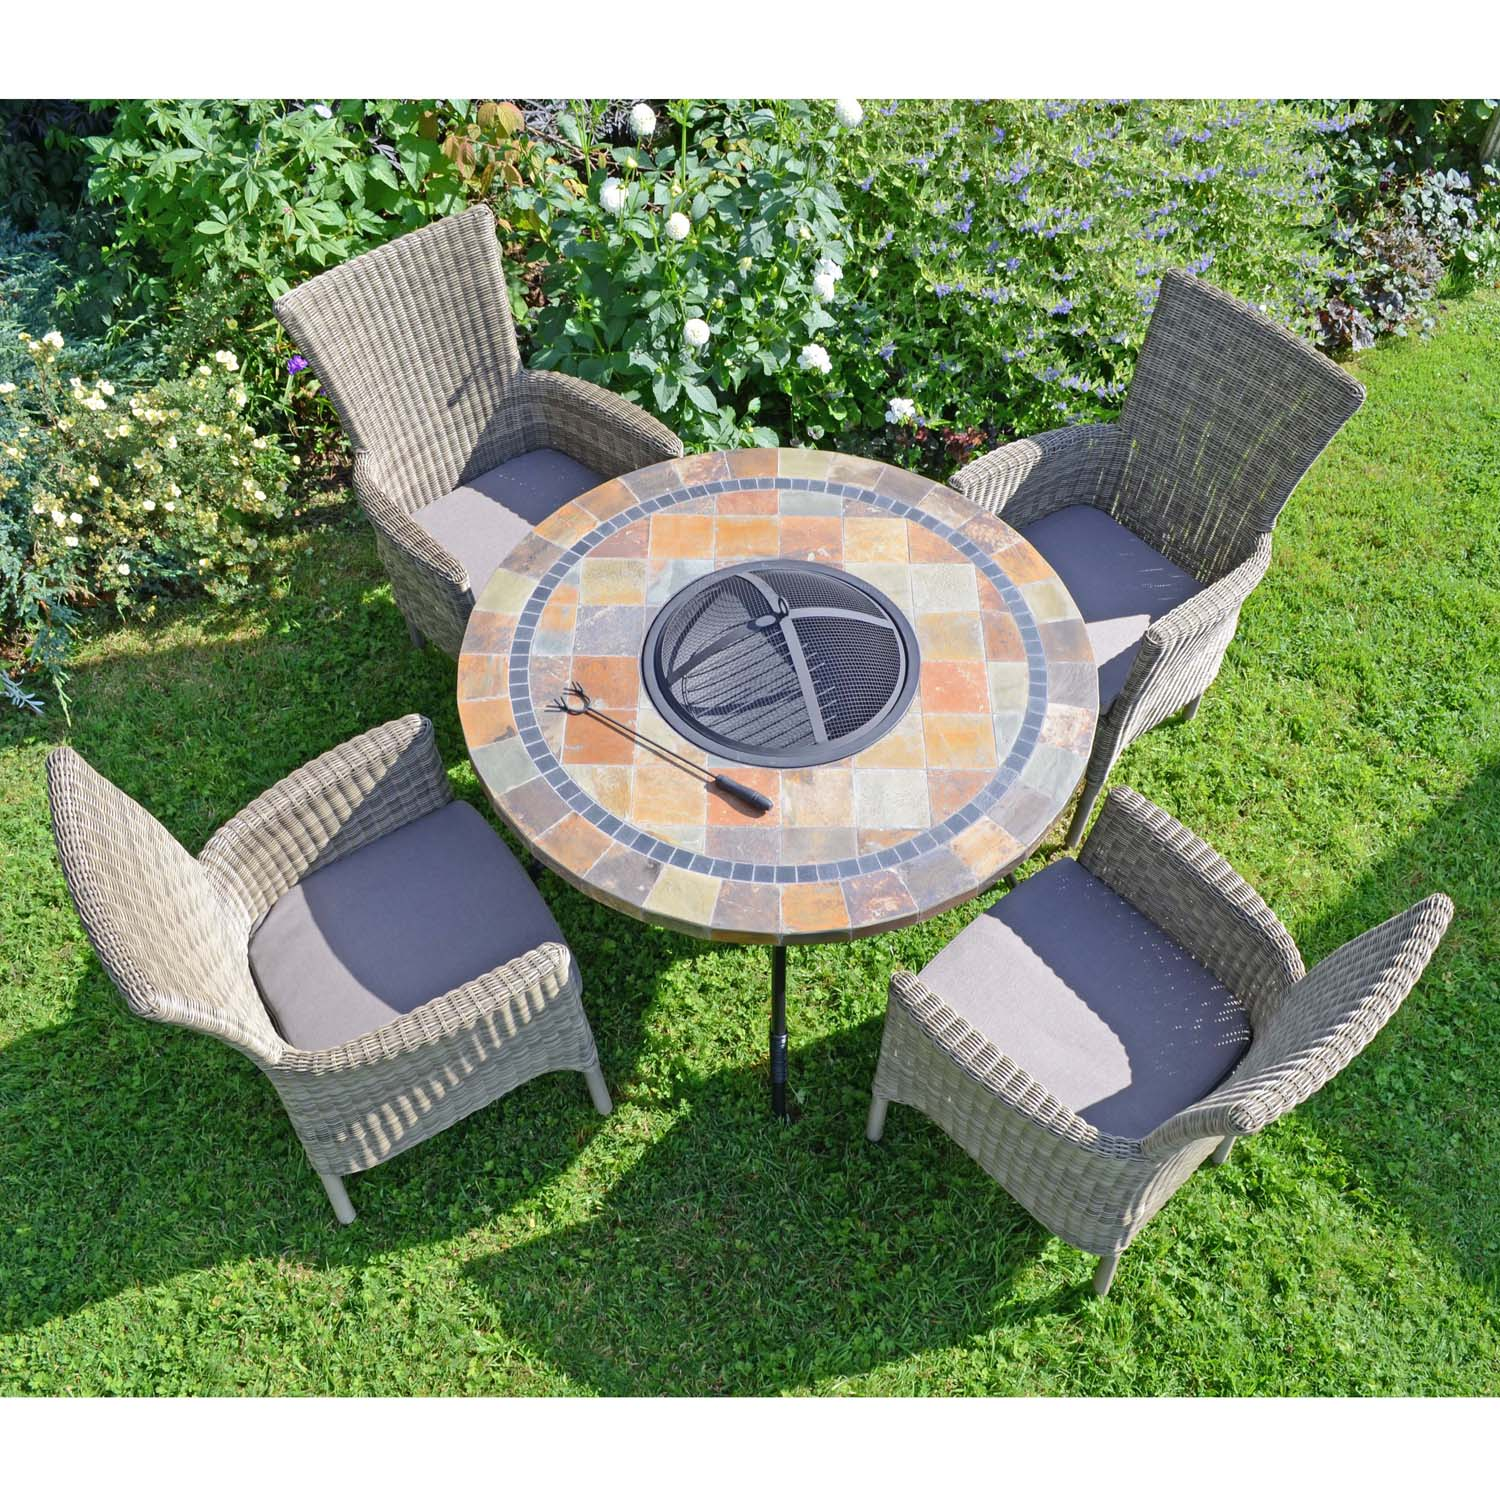 Image of: Colorado Fire Pit Table With 4 Dorchester Chairs Set Greenfern Garden Furniture